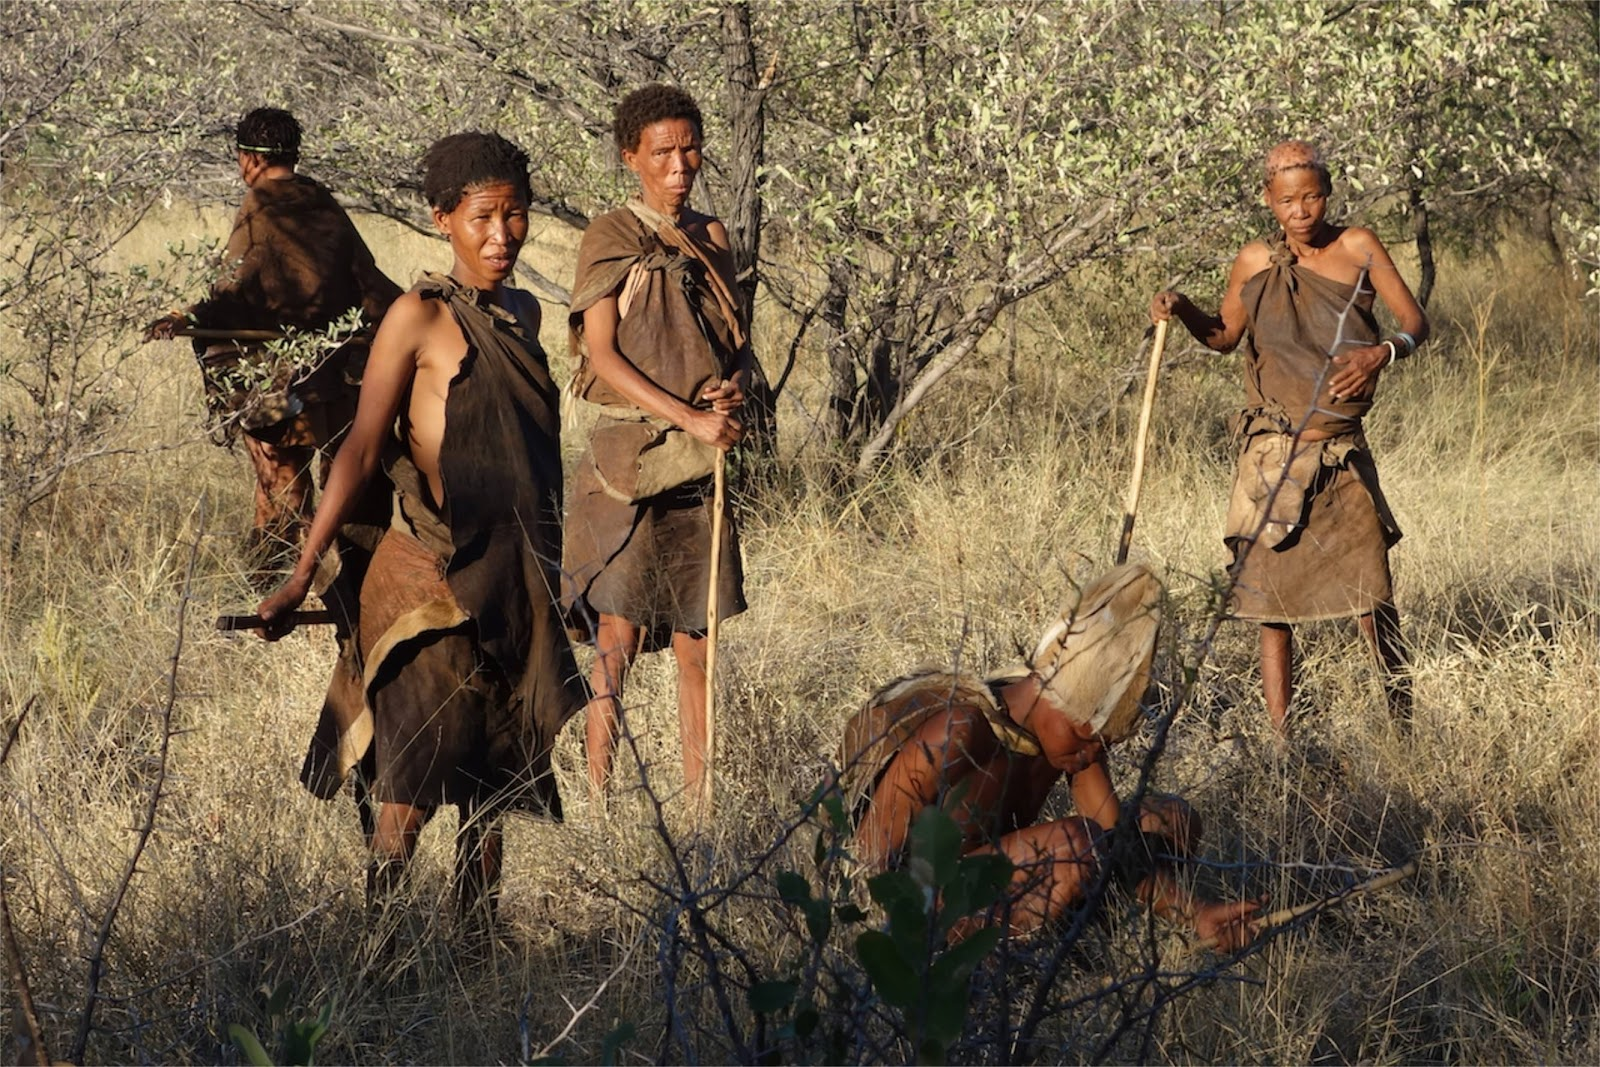 South African cultures and their nuances_San Bushmen